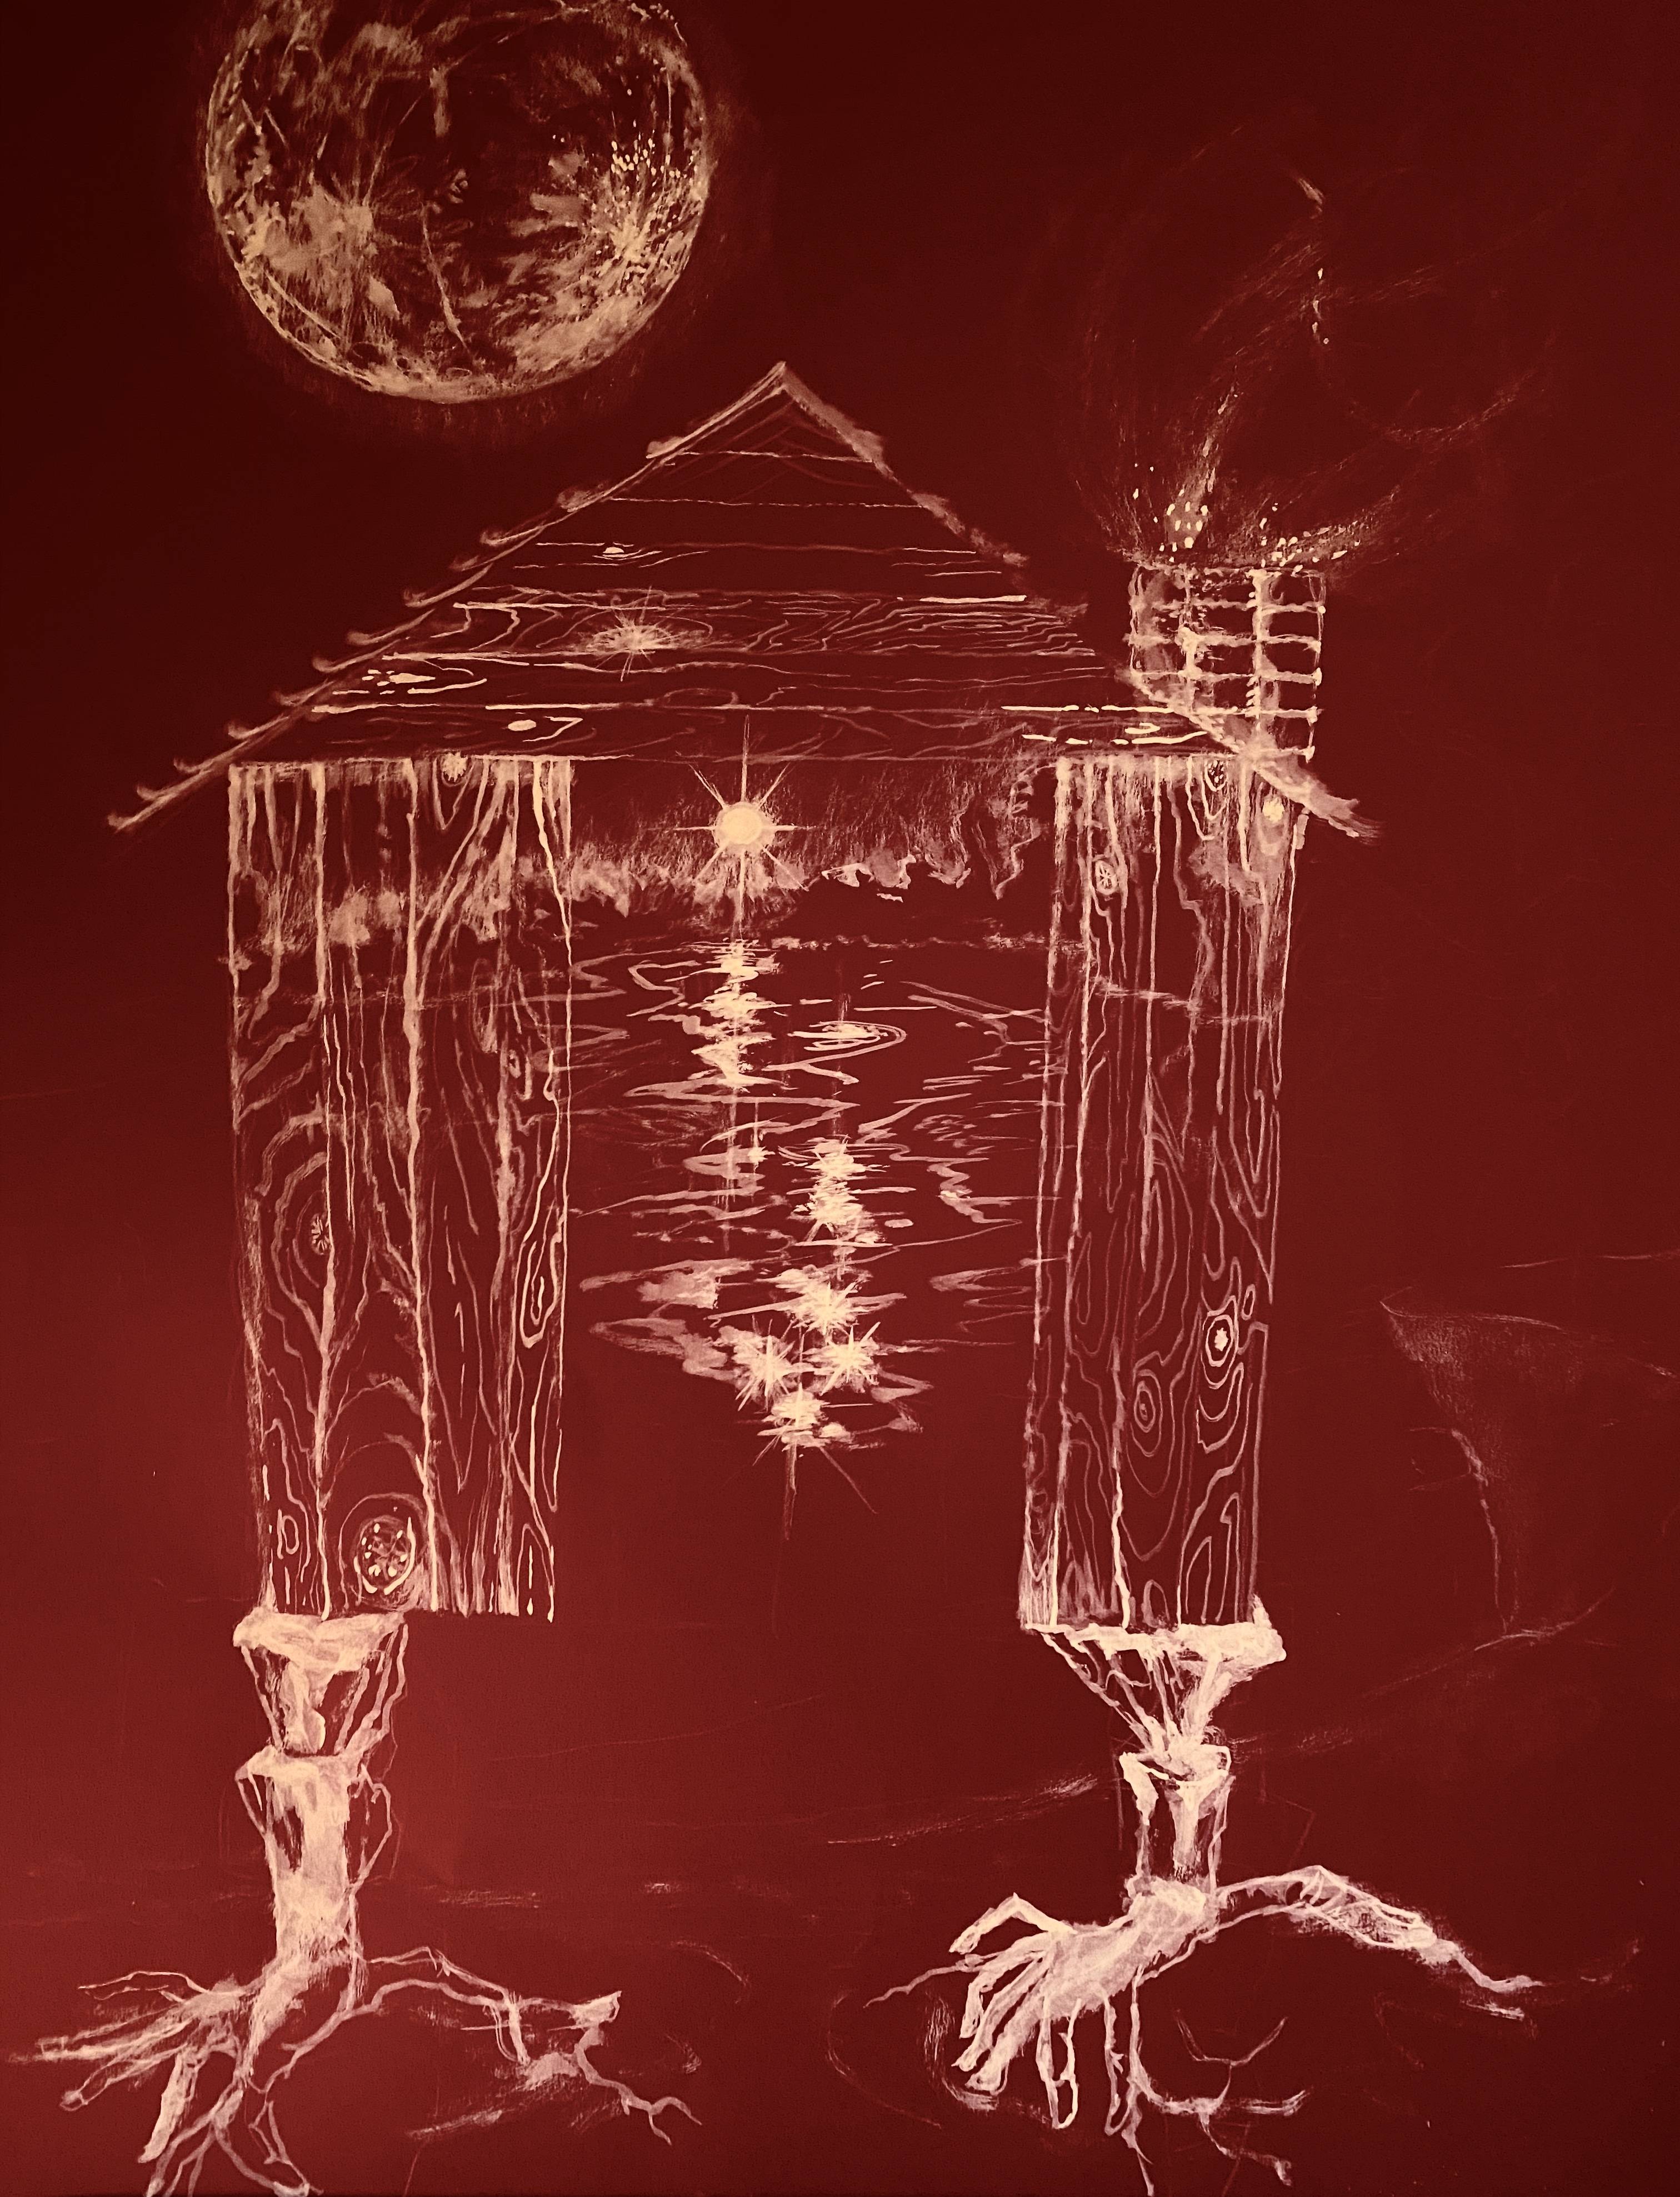 Human soul cabin on deep red paper